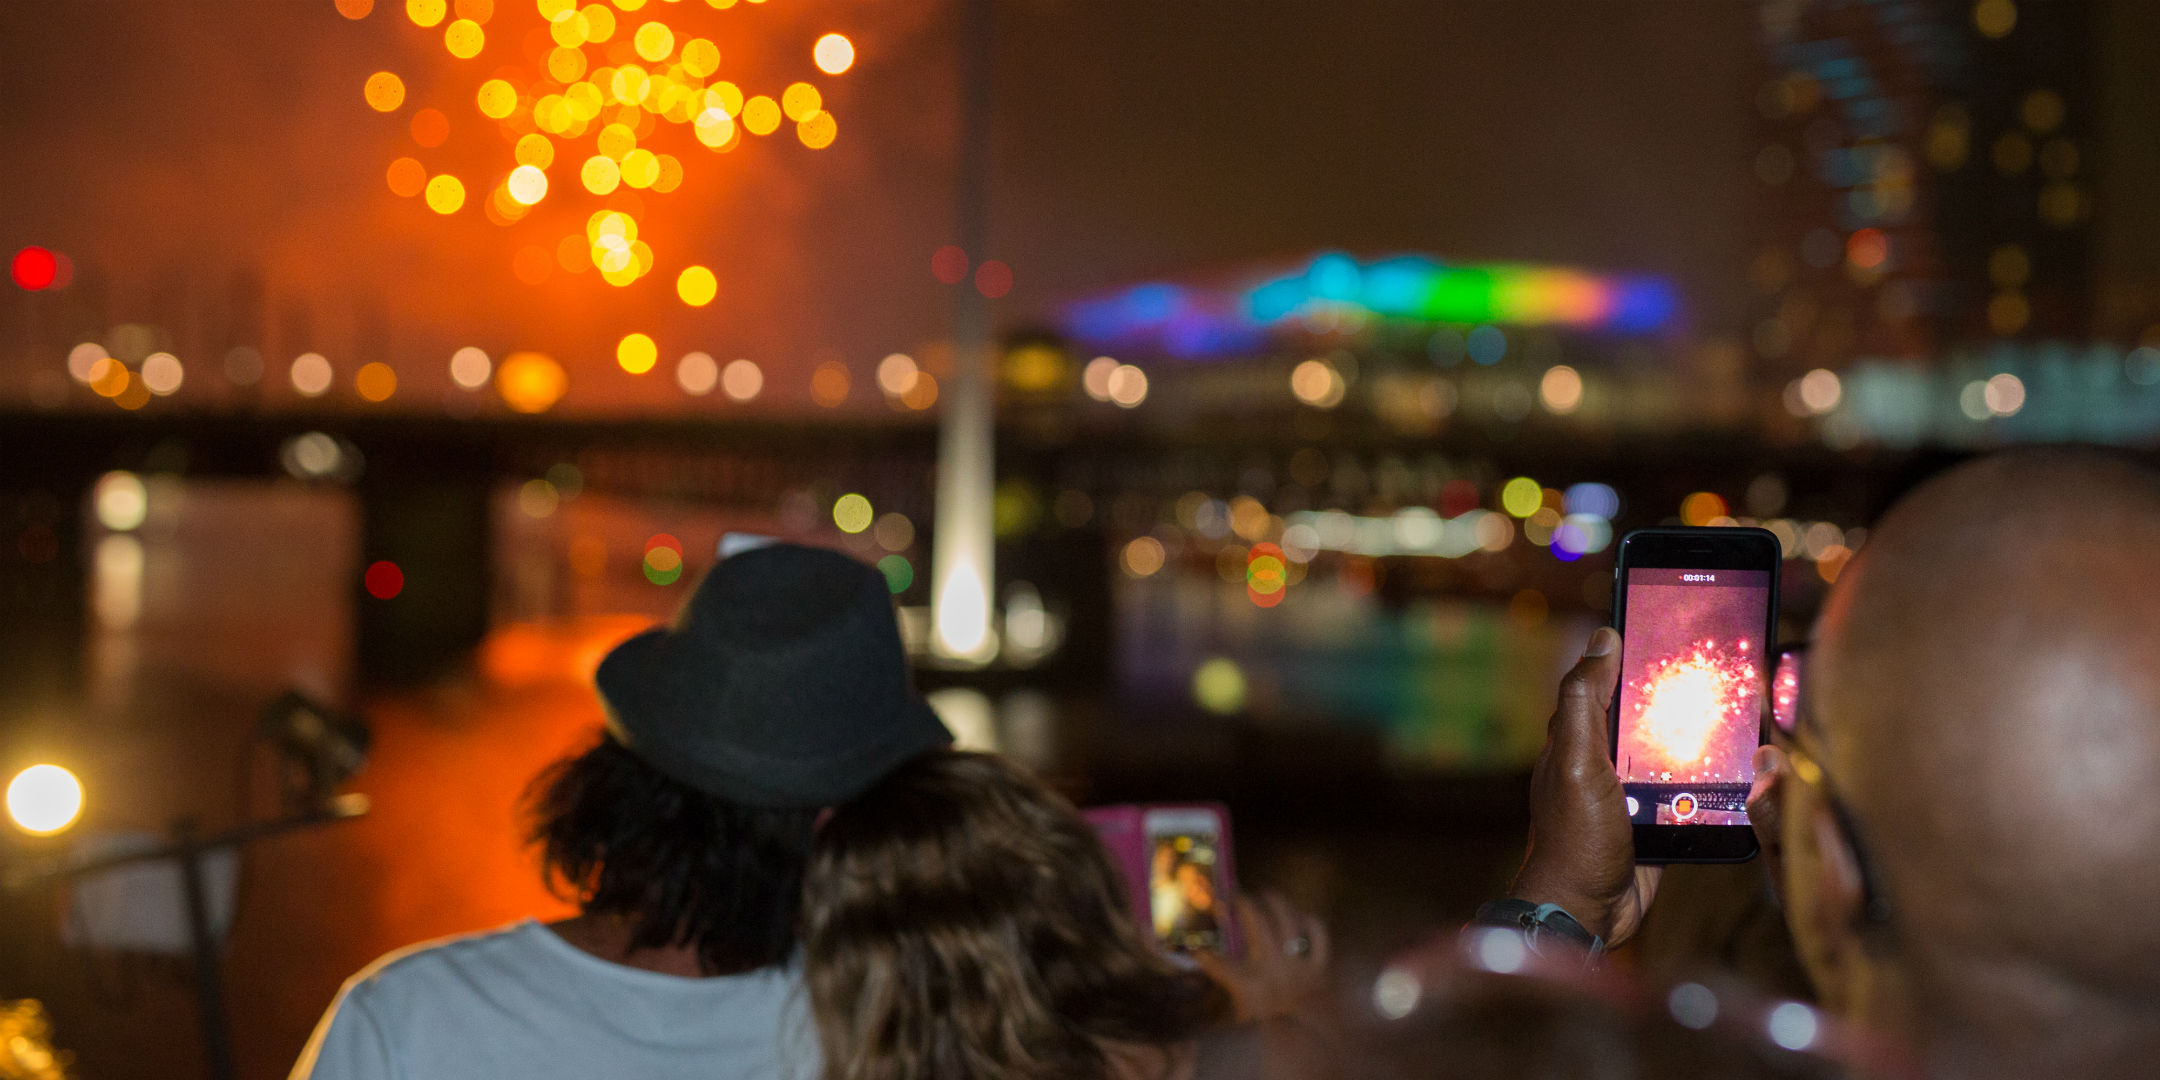 Fireworks at Darling Harbour, New Year's Eve 2017